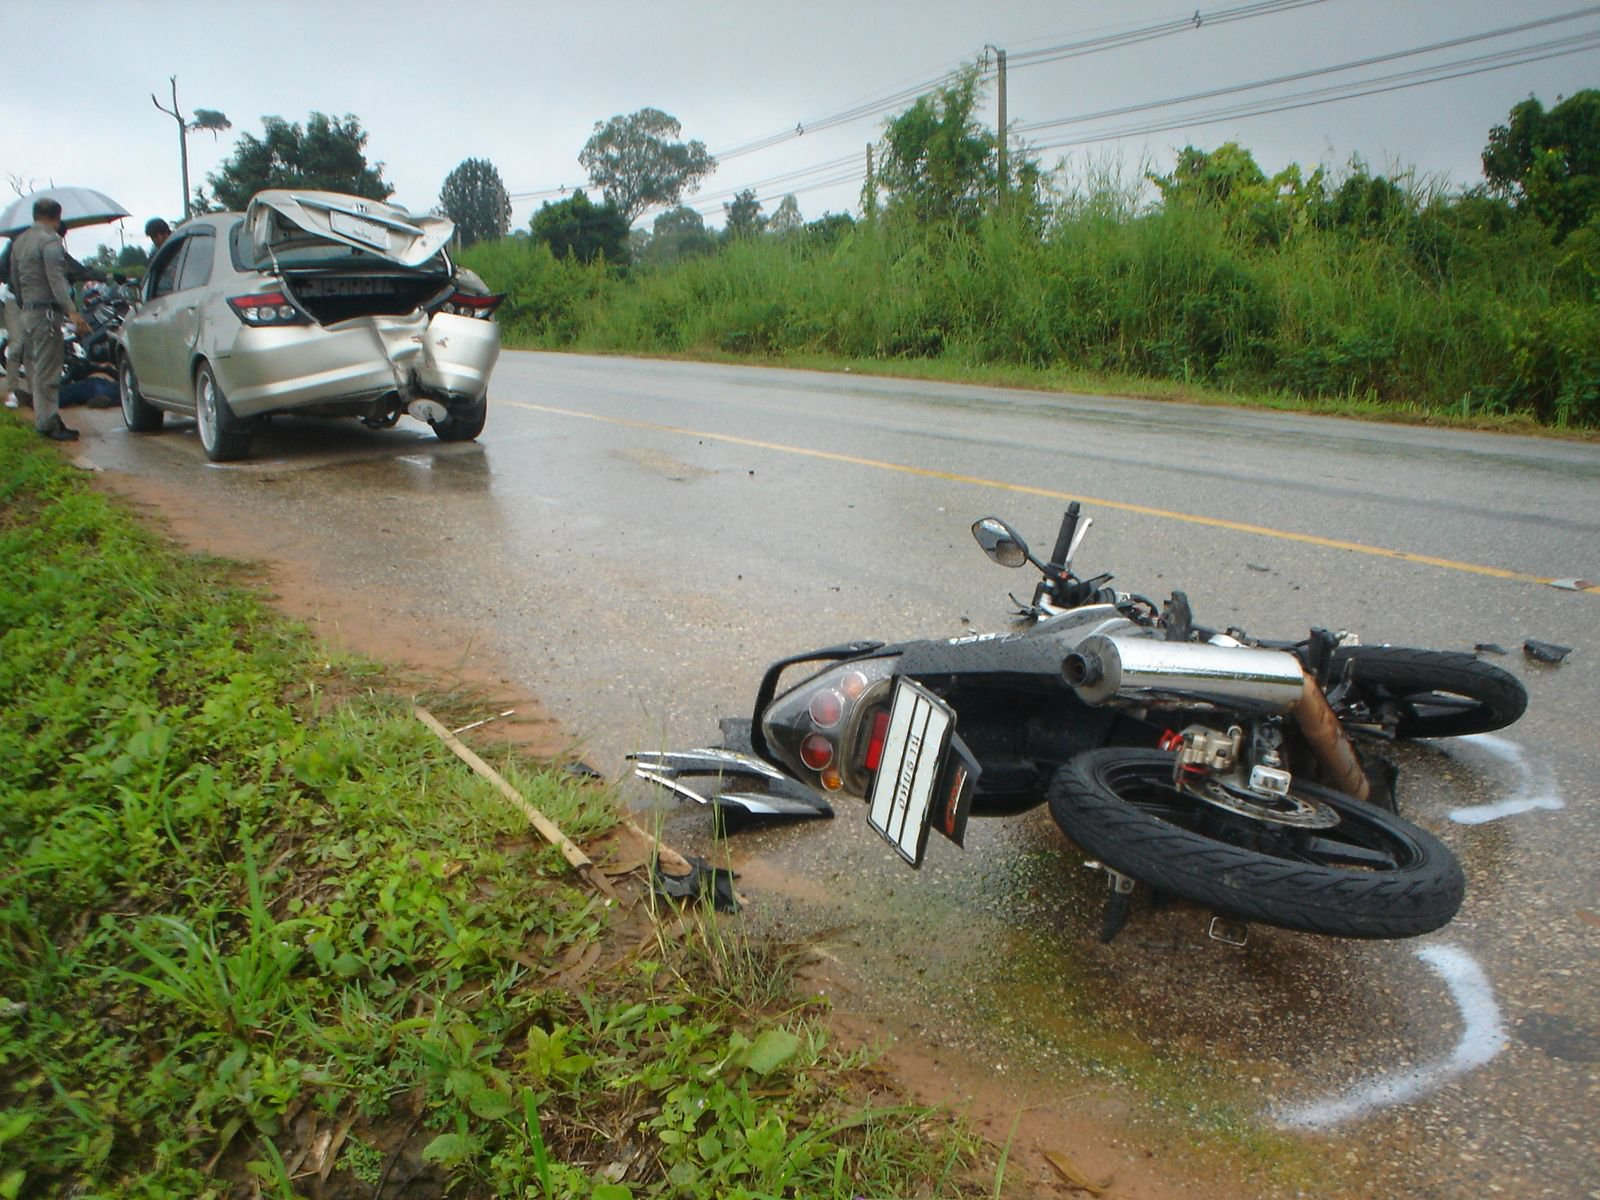 Honda_City_hit_by_motorcycle_1-1